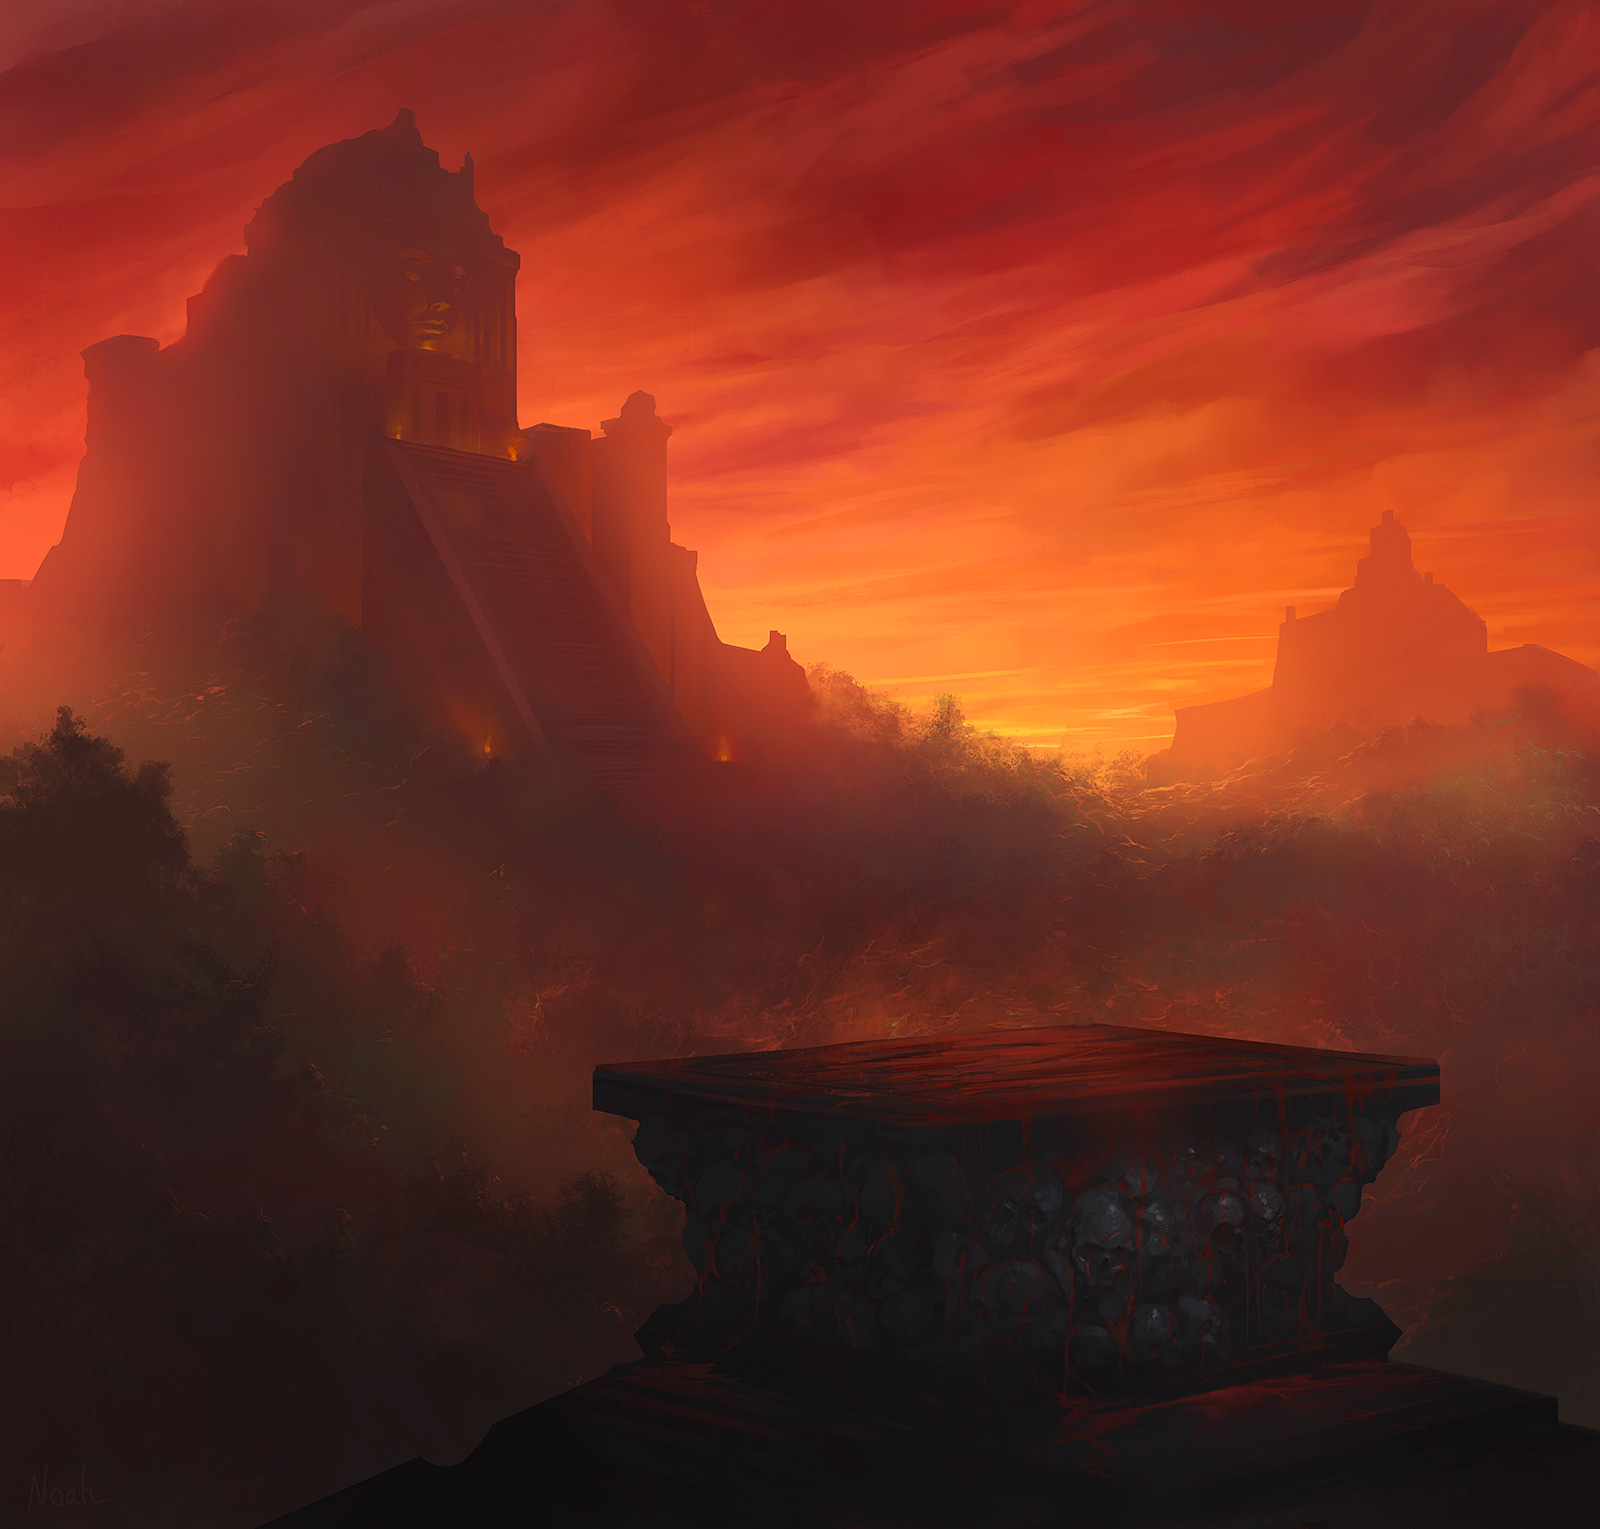 the_forgotten_temple_by_noahbradley-d3h4r9q.jpg - -